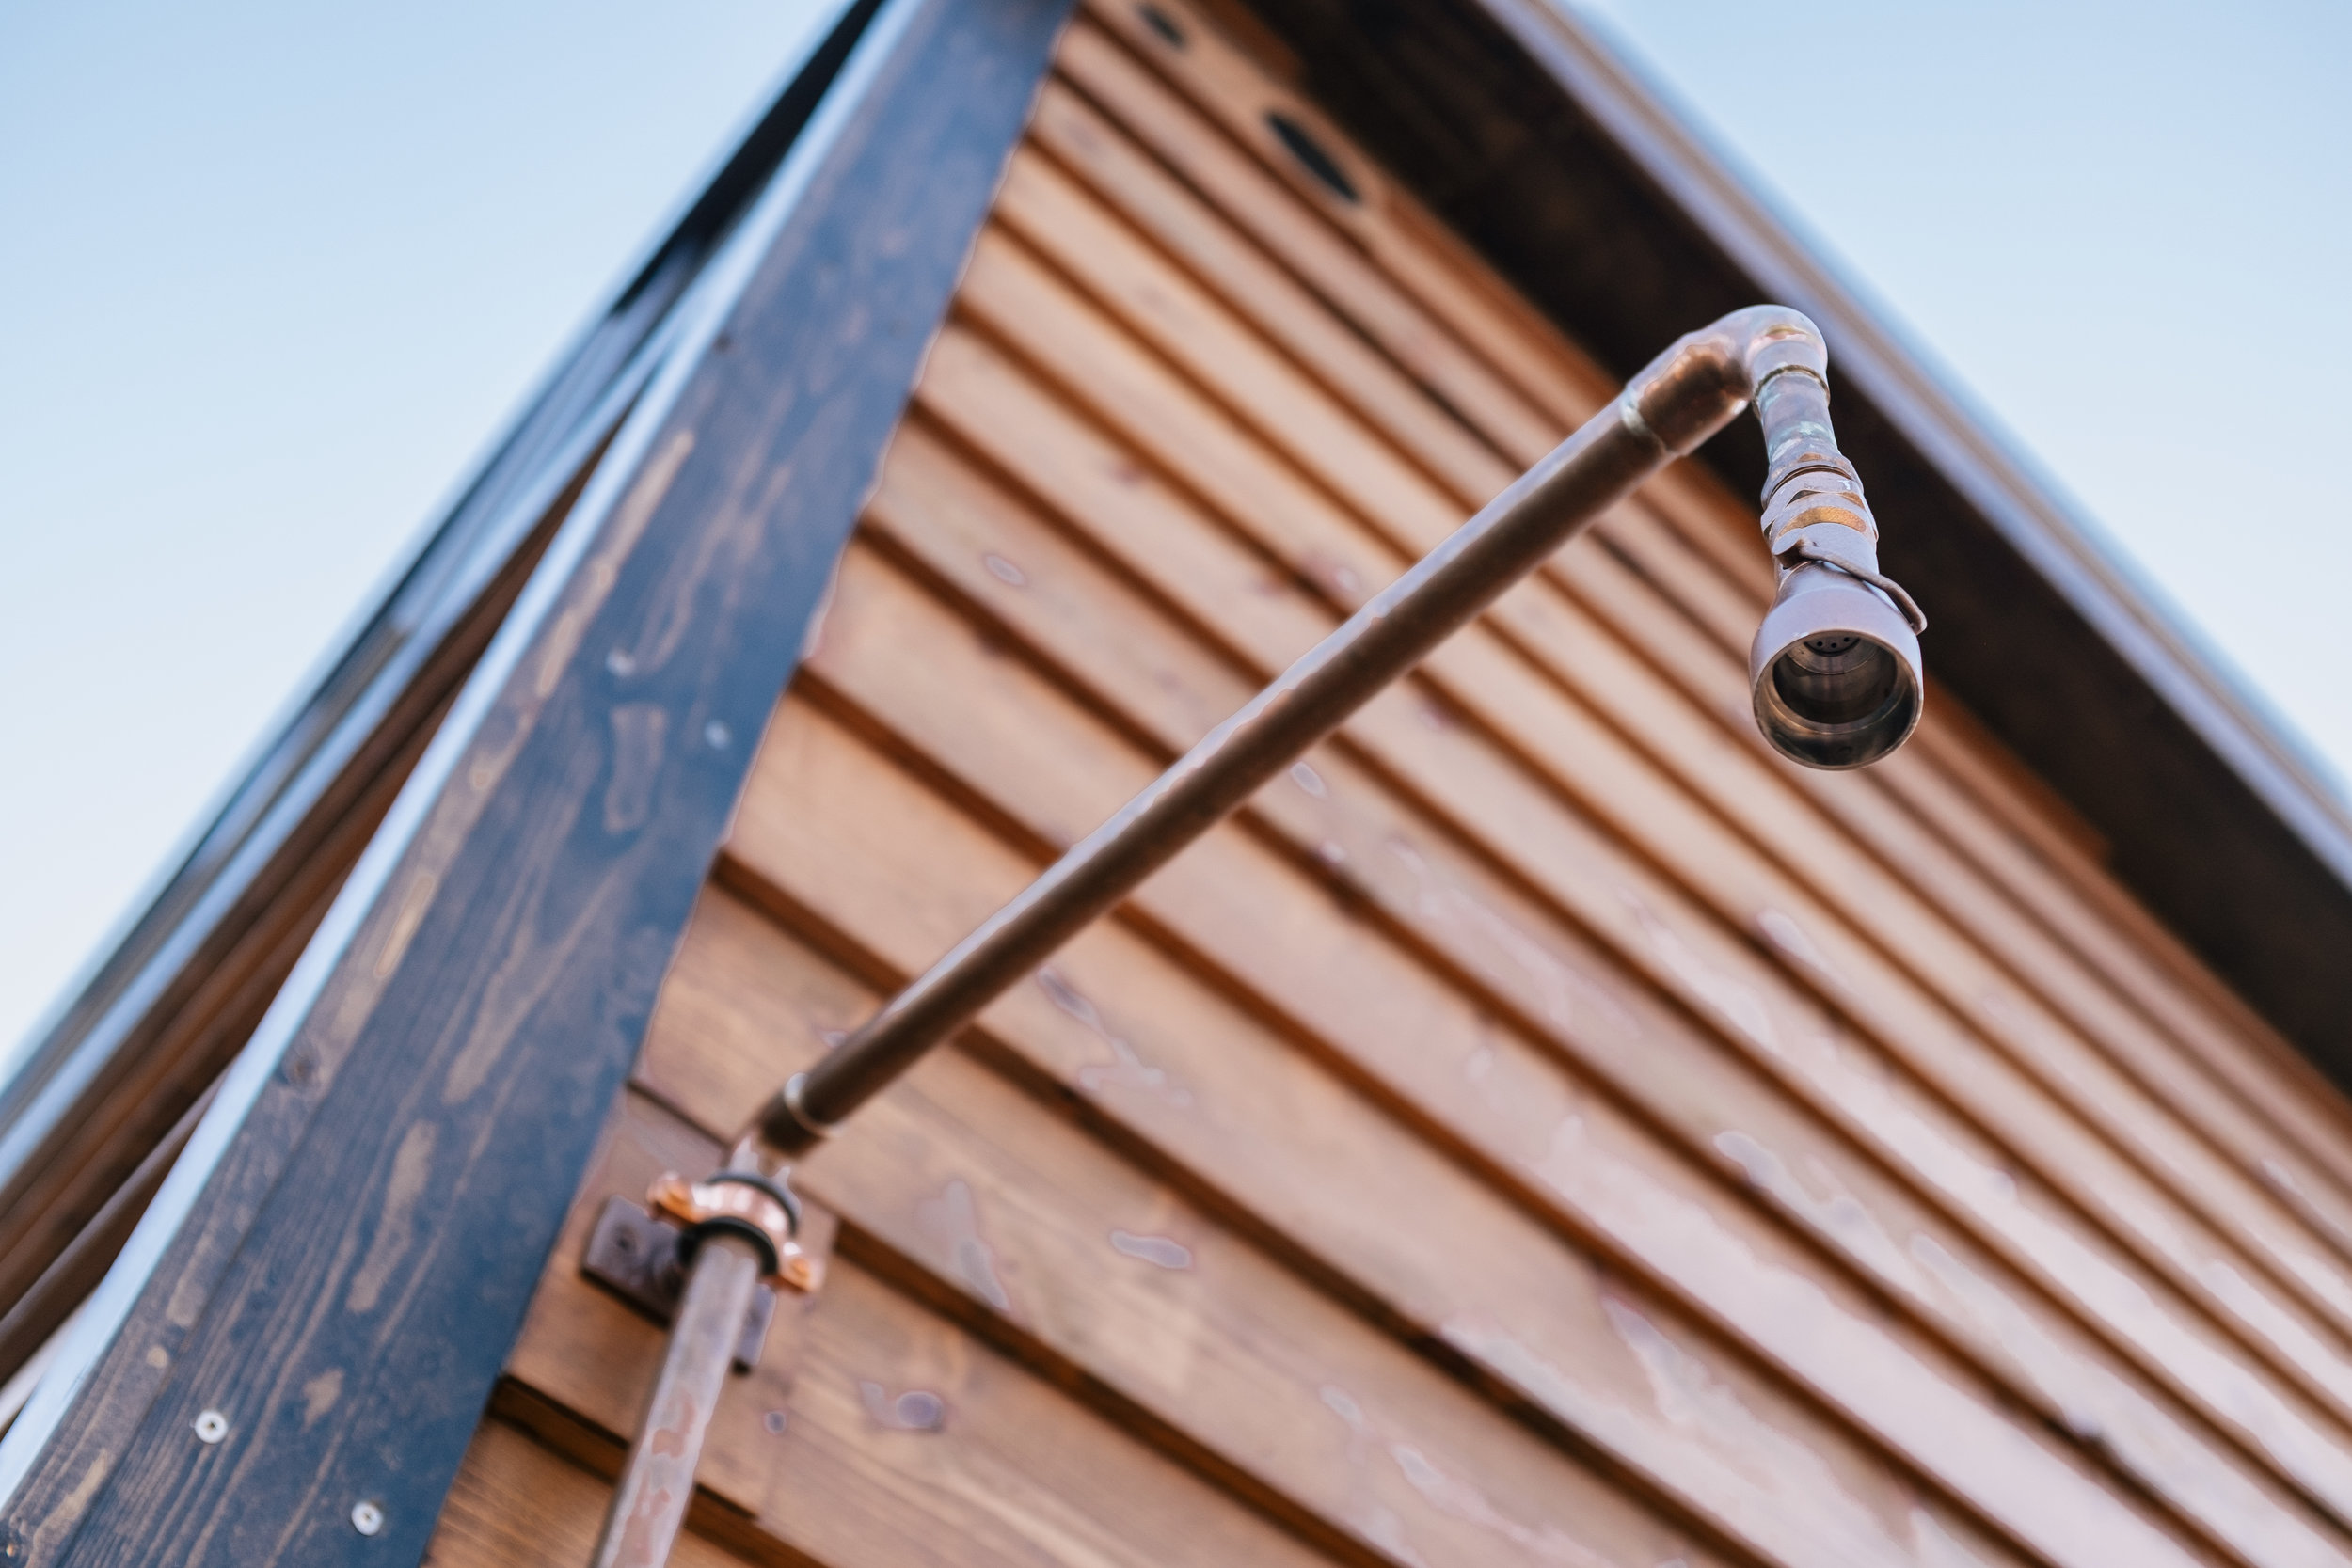 The Silhouette by Wind River Tiny Homes - rustic, cedar siding, patina steel clad siding, exterior copper swivel shower